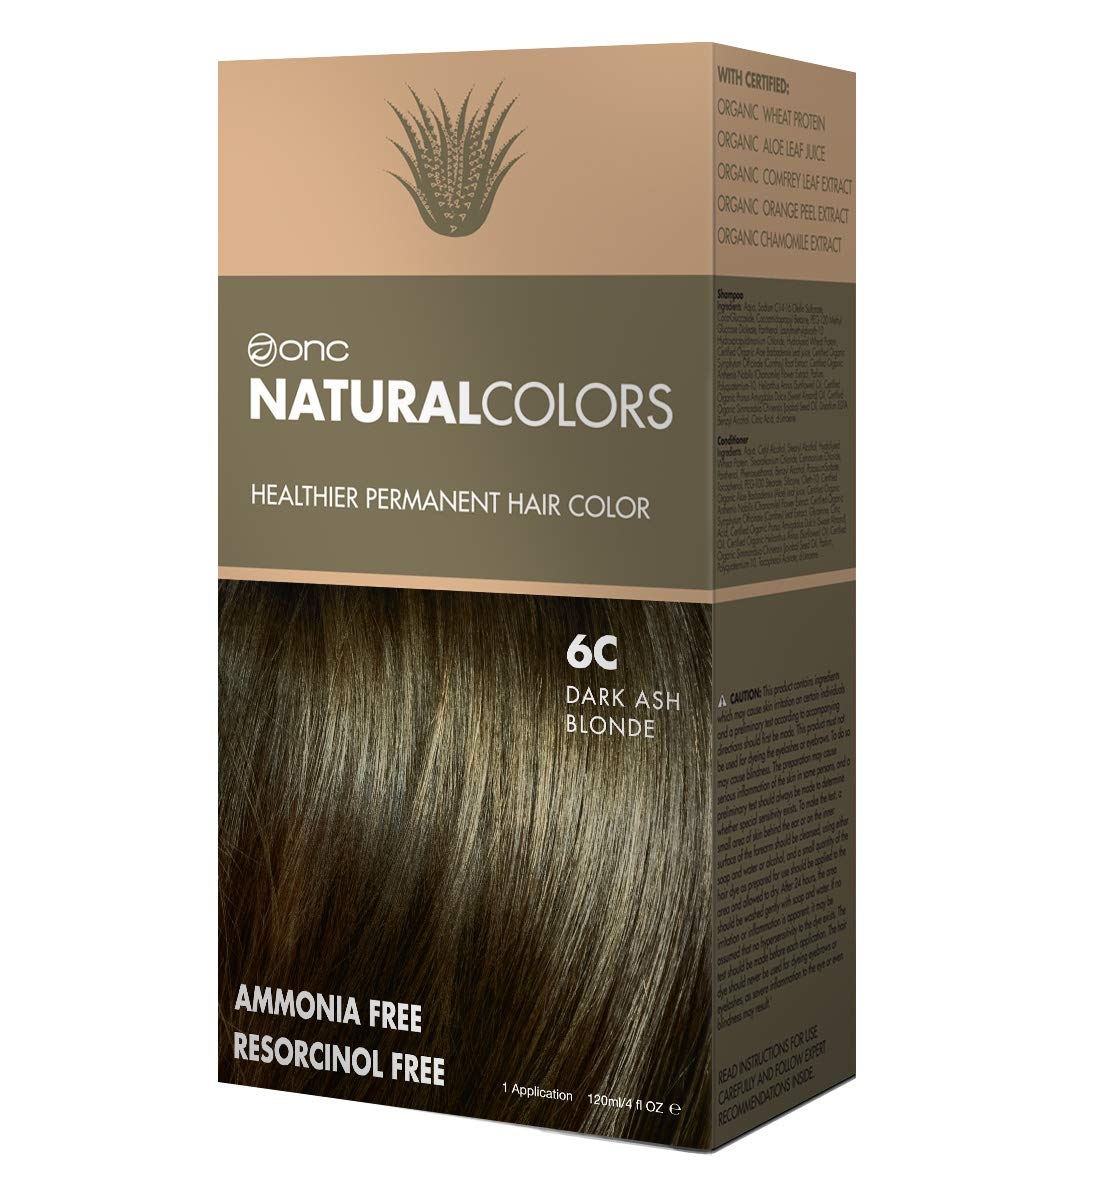 ONC NATURALCOLORS 6C Dark Ash Blonde Healthier Permanent Hair Color - 120 ml (4 fl. oz.) | Ammonia Free, Natural Hair Dye, No Parabens - Premium Salon Quality by ONC